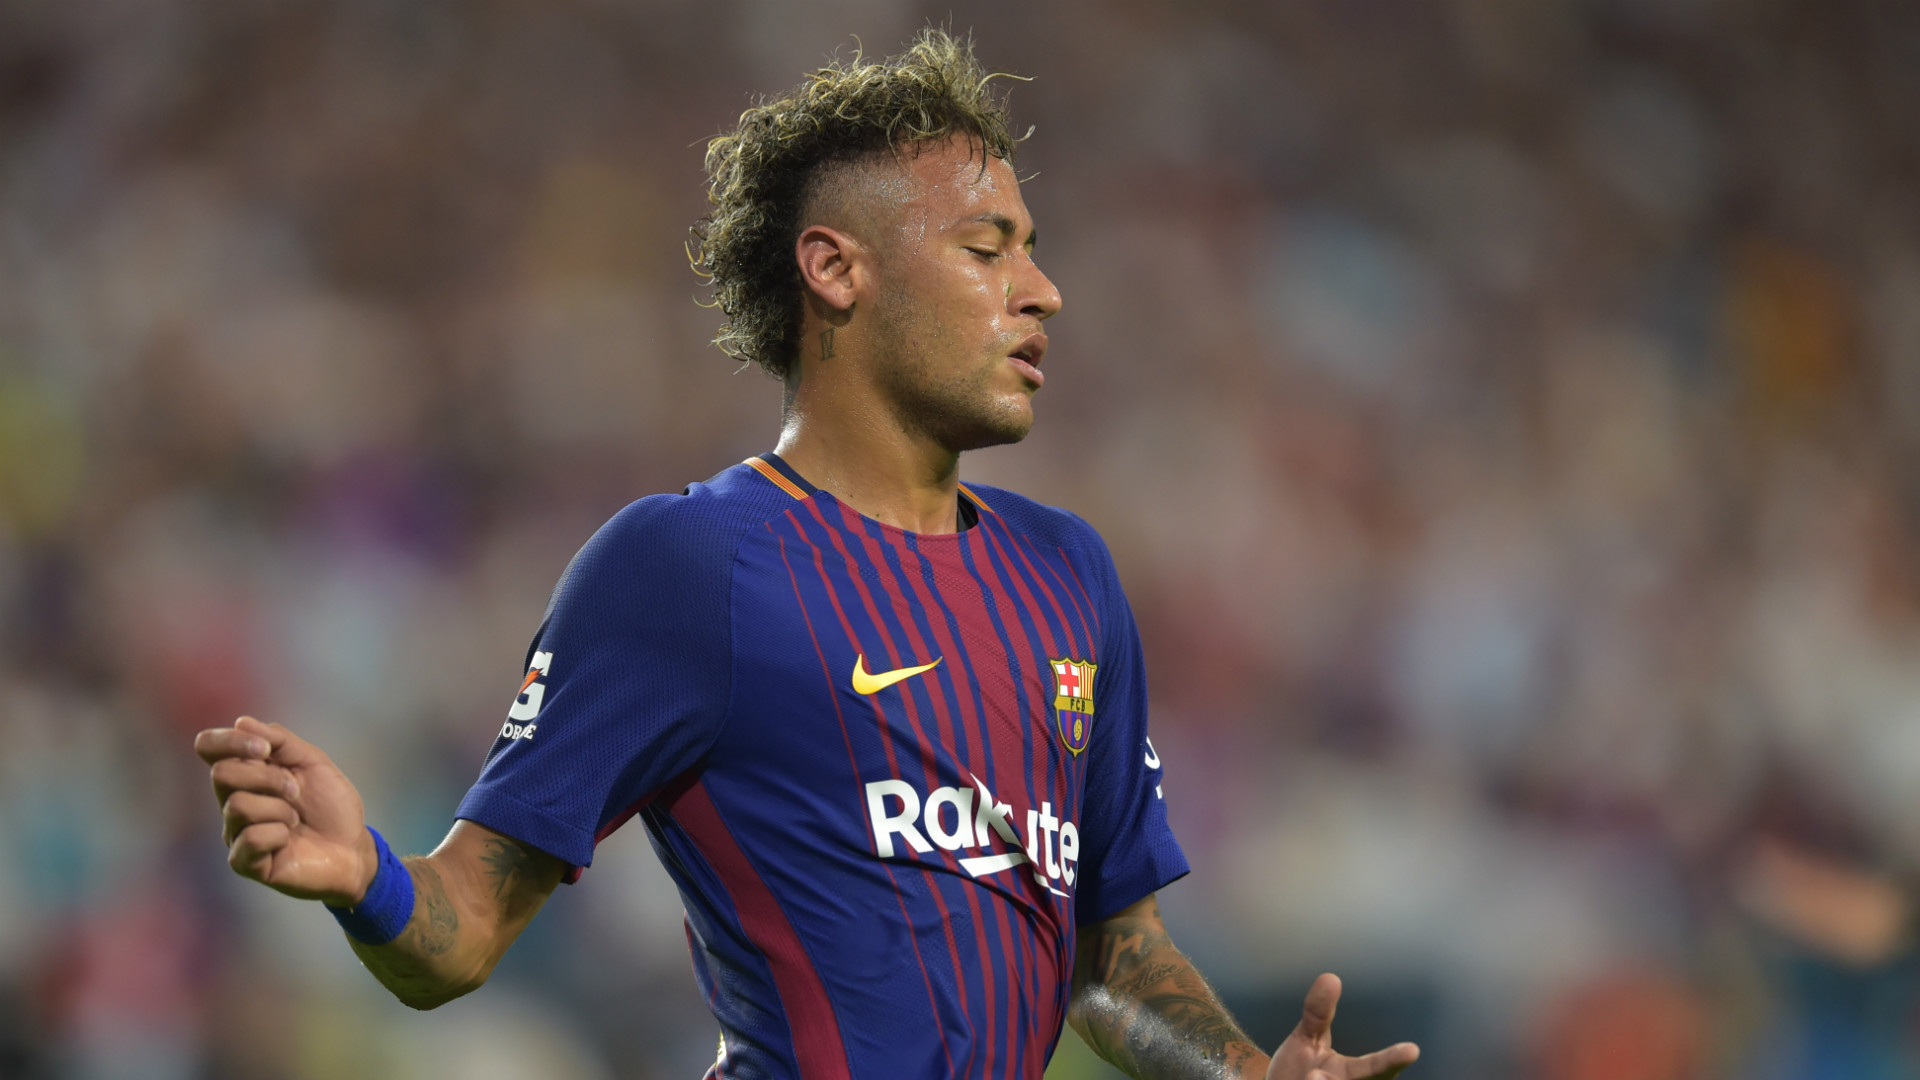 Neymar will be presented at PSG this week, claims agent Ribeiro